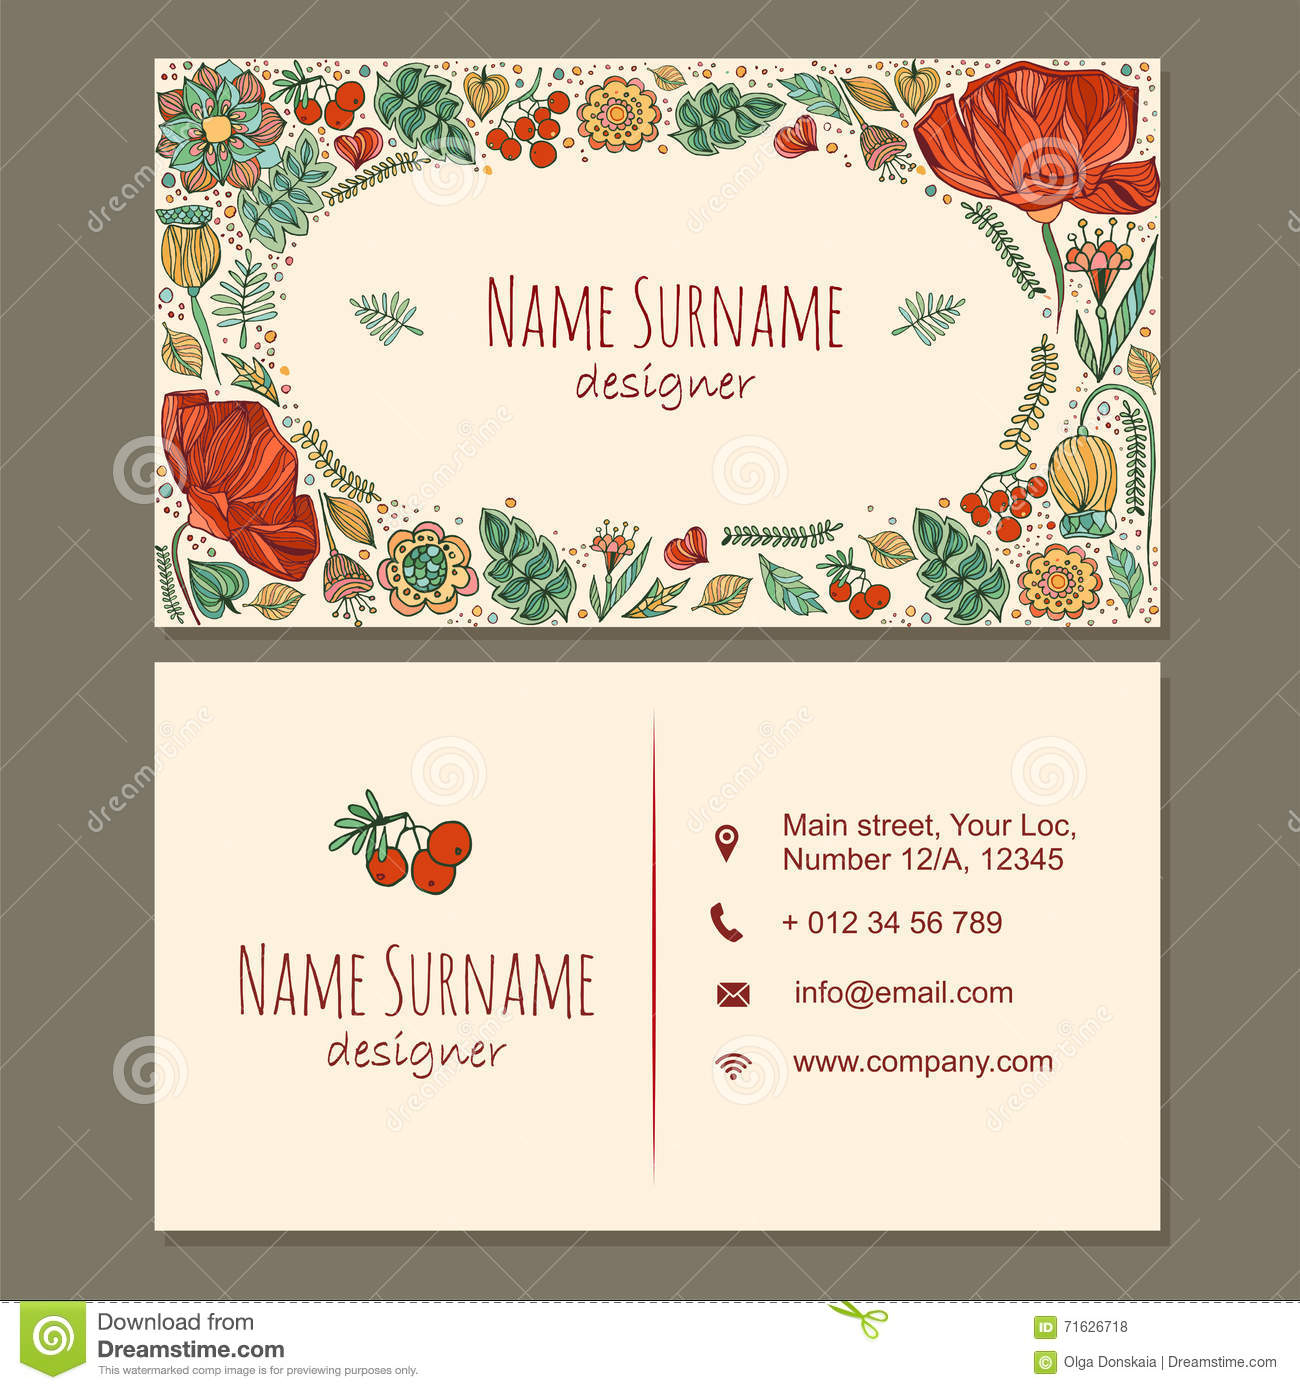 Visiting Card Business Card With Cute Hand Drawn Floral Pattern